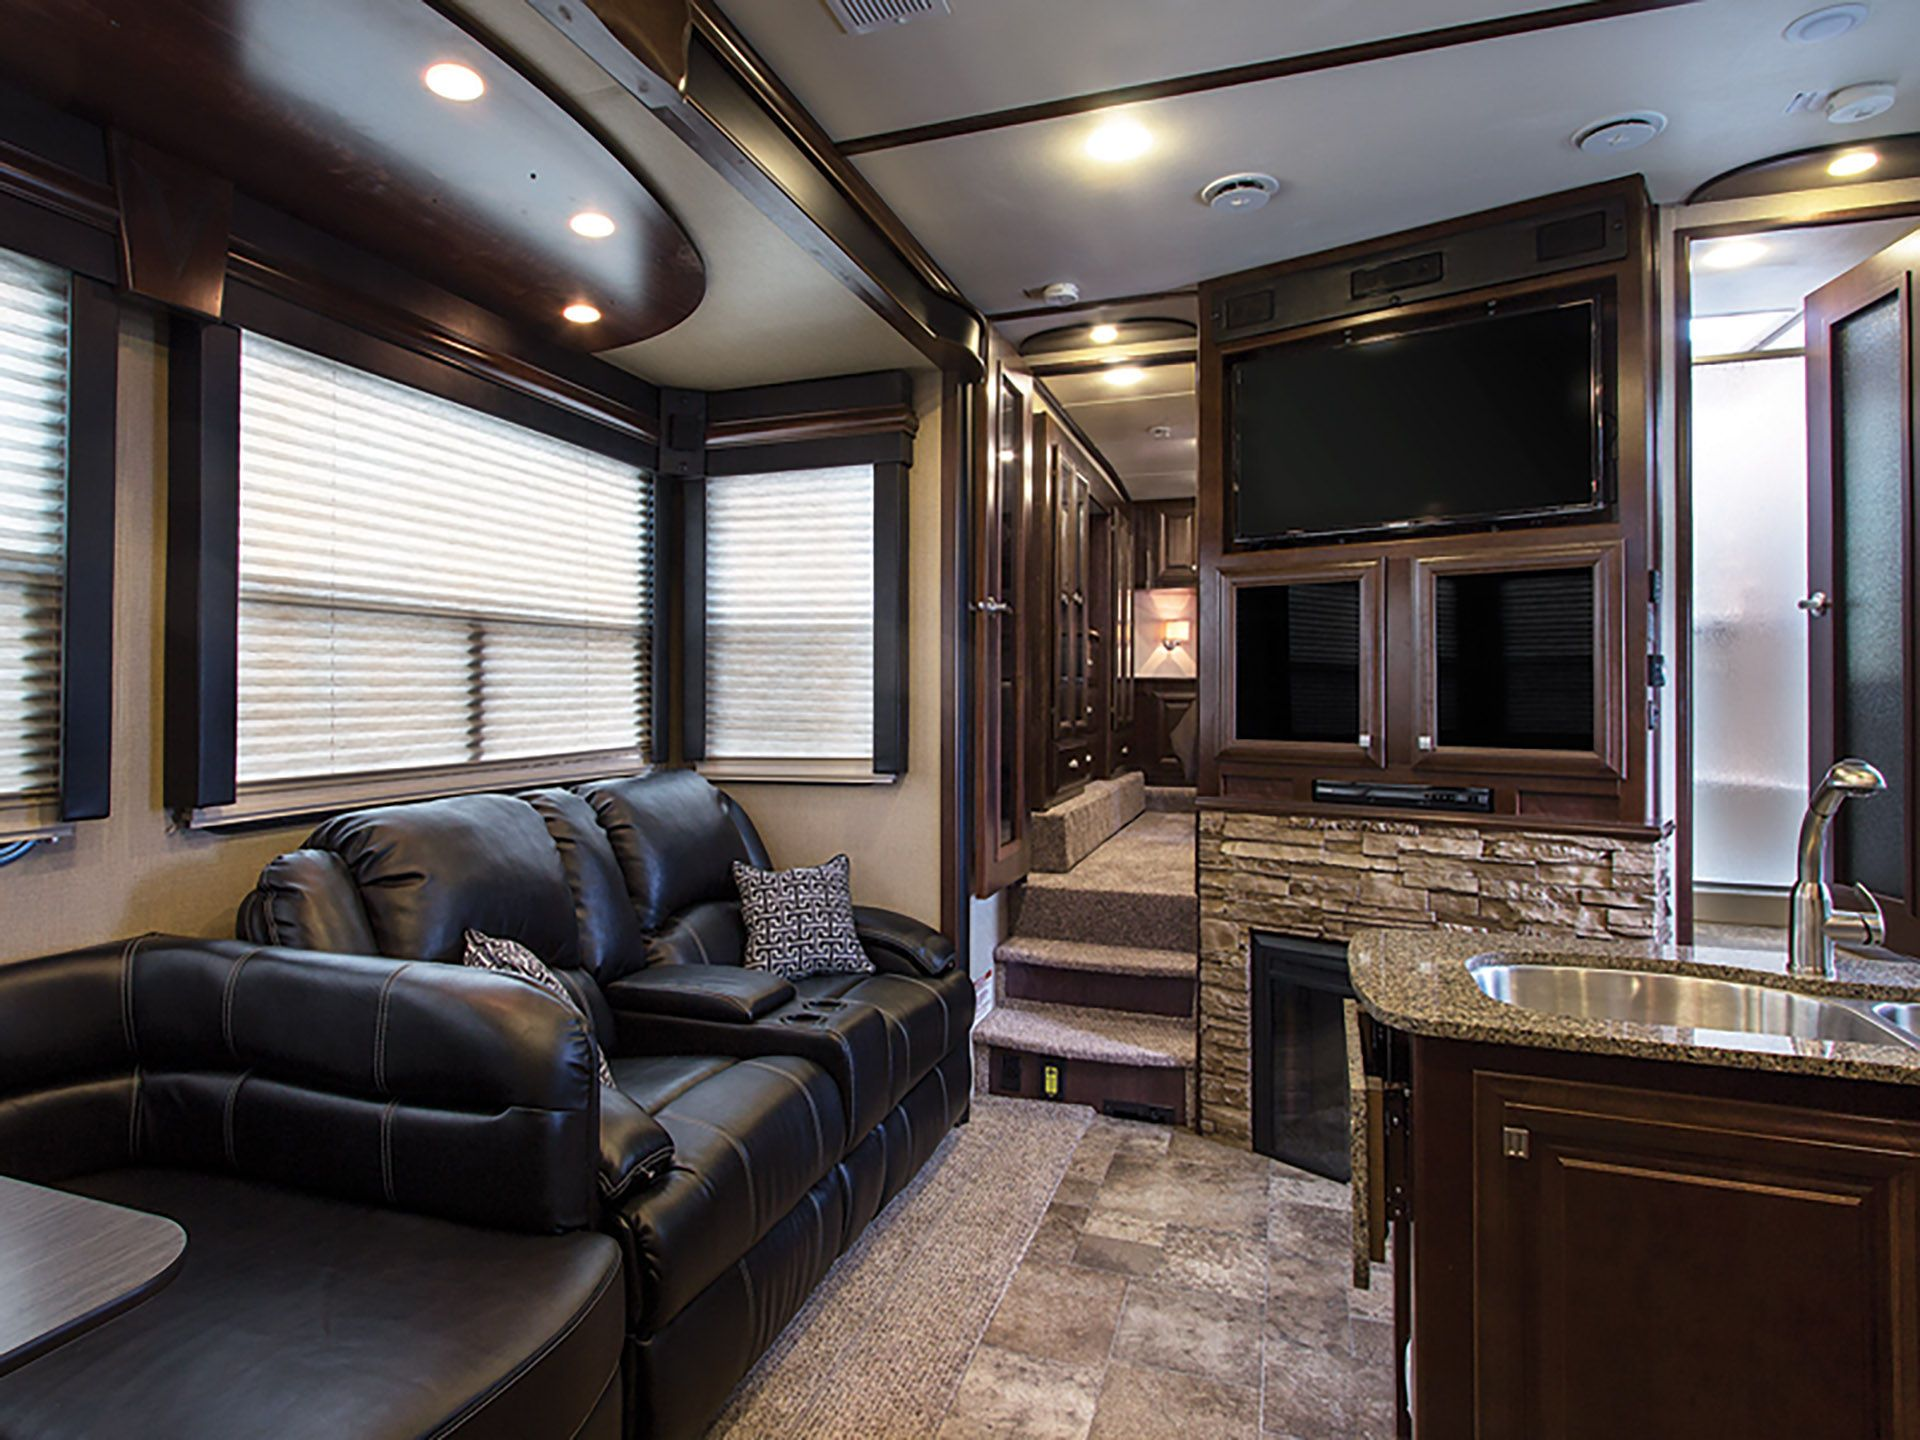 RV Makeover with Lippert Components (Furrion Appliances